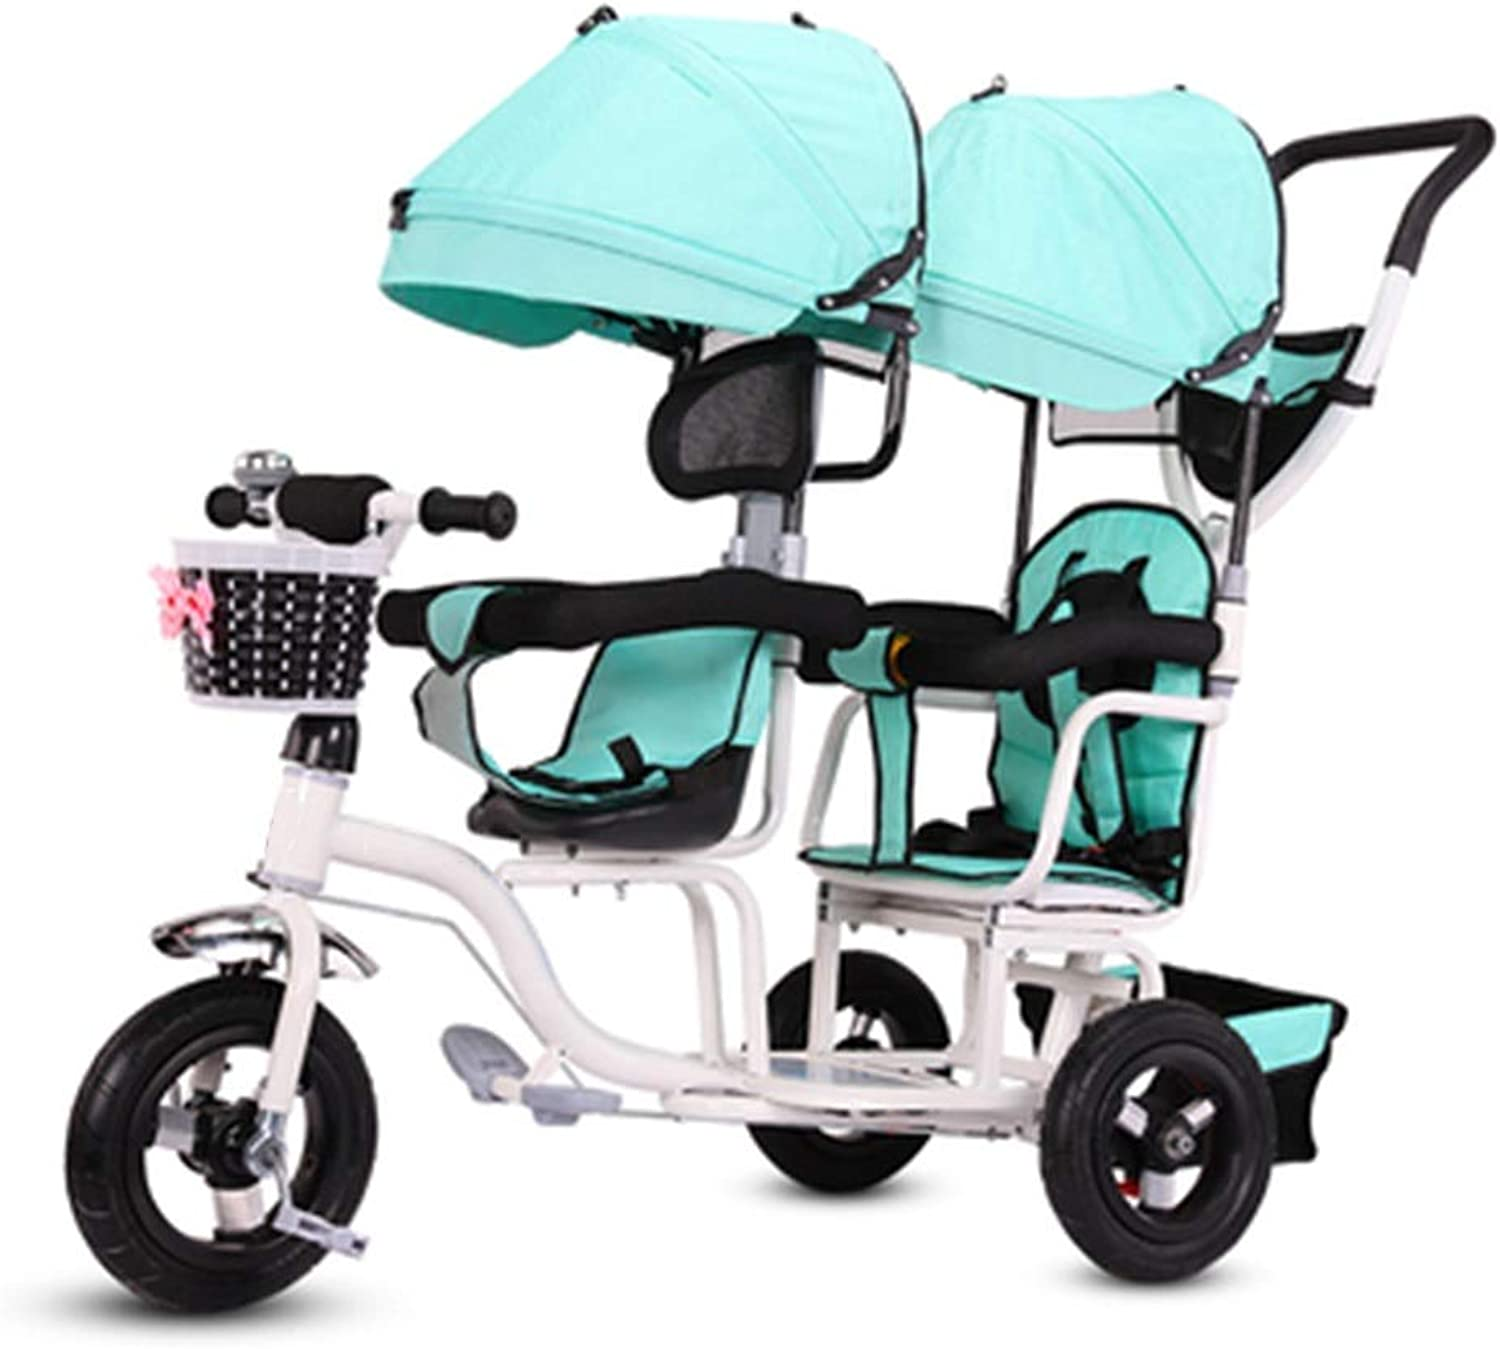 YUMEIGE Kids' Tricycles Twin Kids Tricycle Baby Stroller with Rear Seat FivePoint Seat Belt 16 Years Old Birthday Gift Tricycle Kids Strollers Toddler Trike Load Weight 150kg (Boy Girl) Available